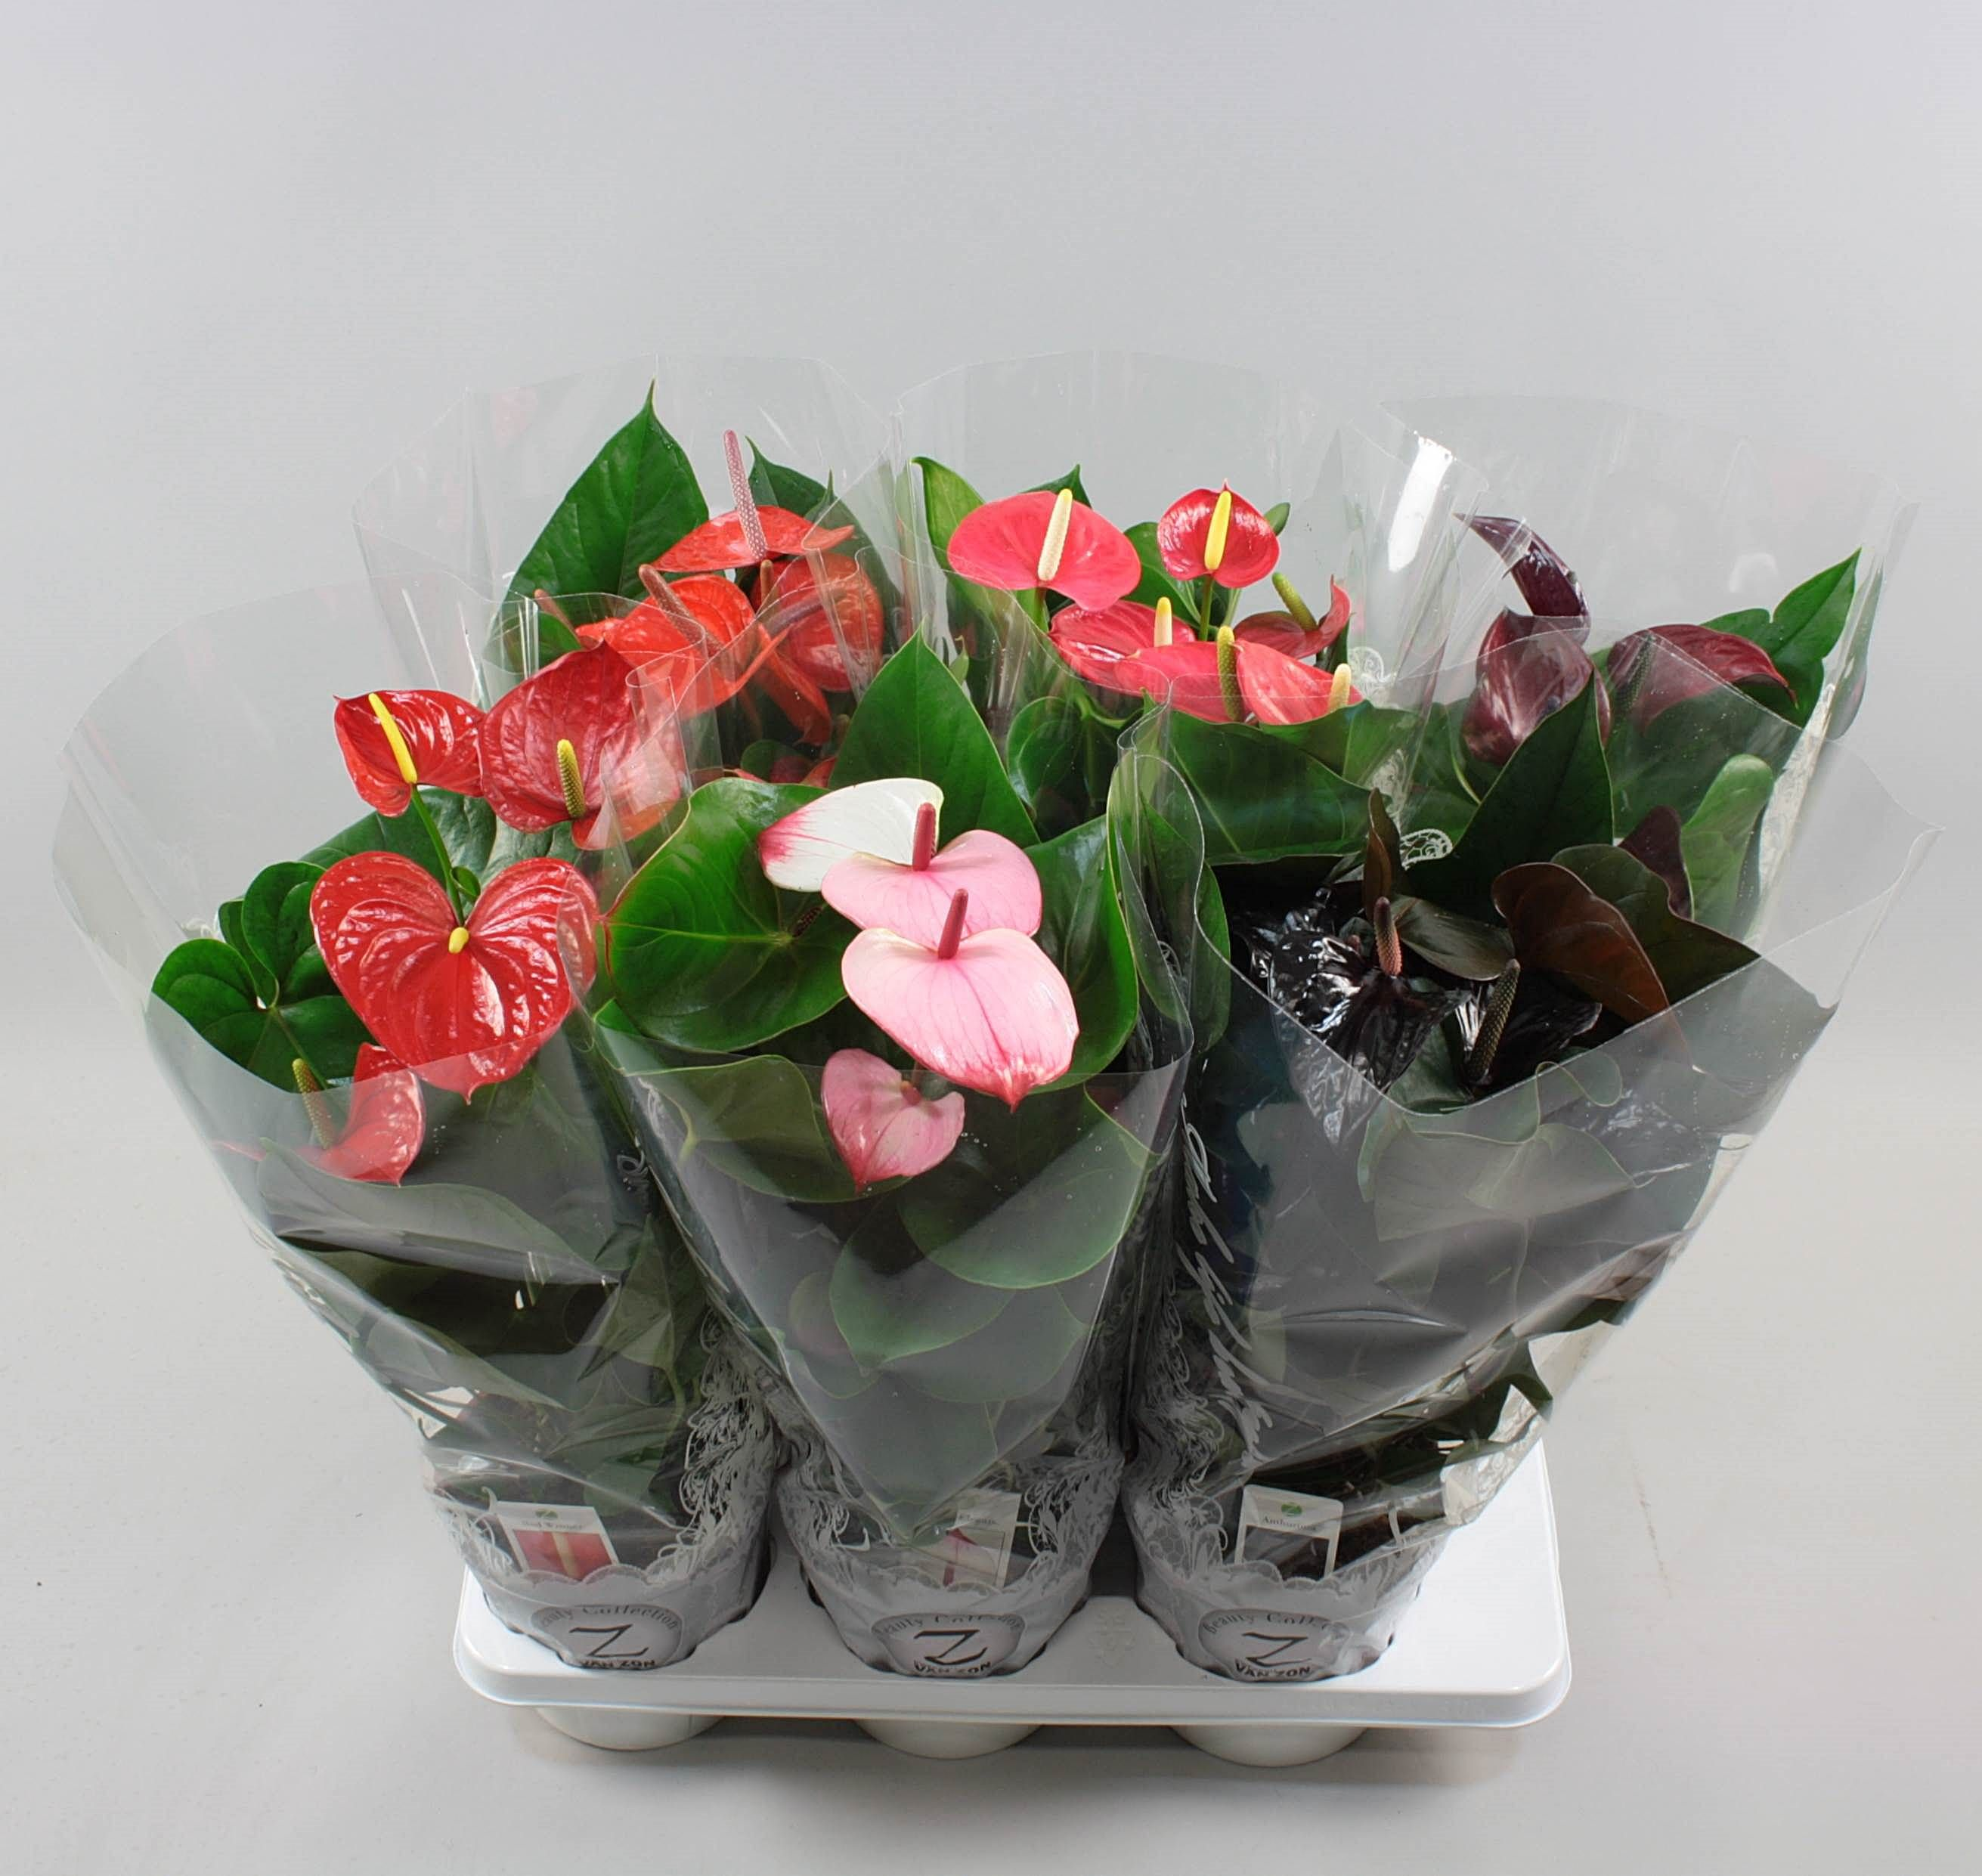 Anthurium andr. Exclusive 6 colormix Ø17cm in lace-sleeve